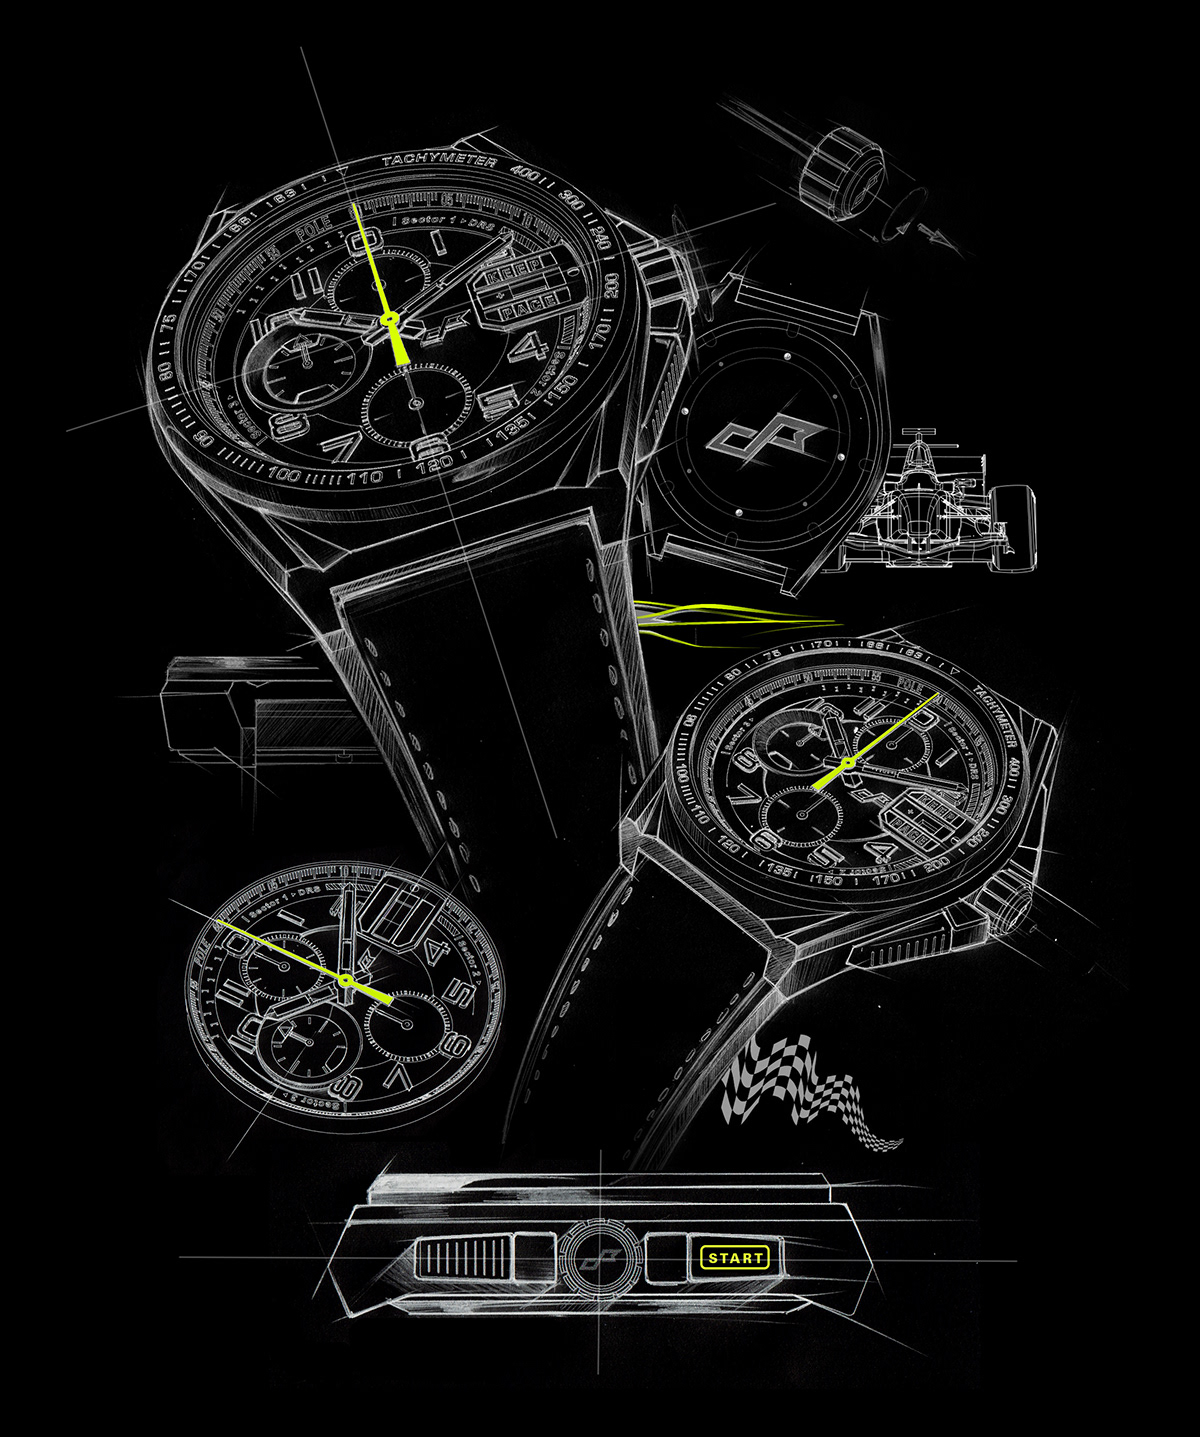 watch sketches for F1 racing